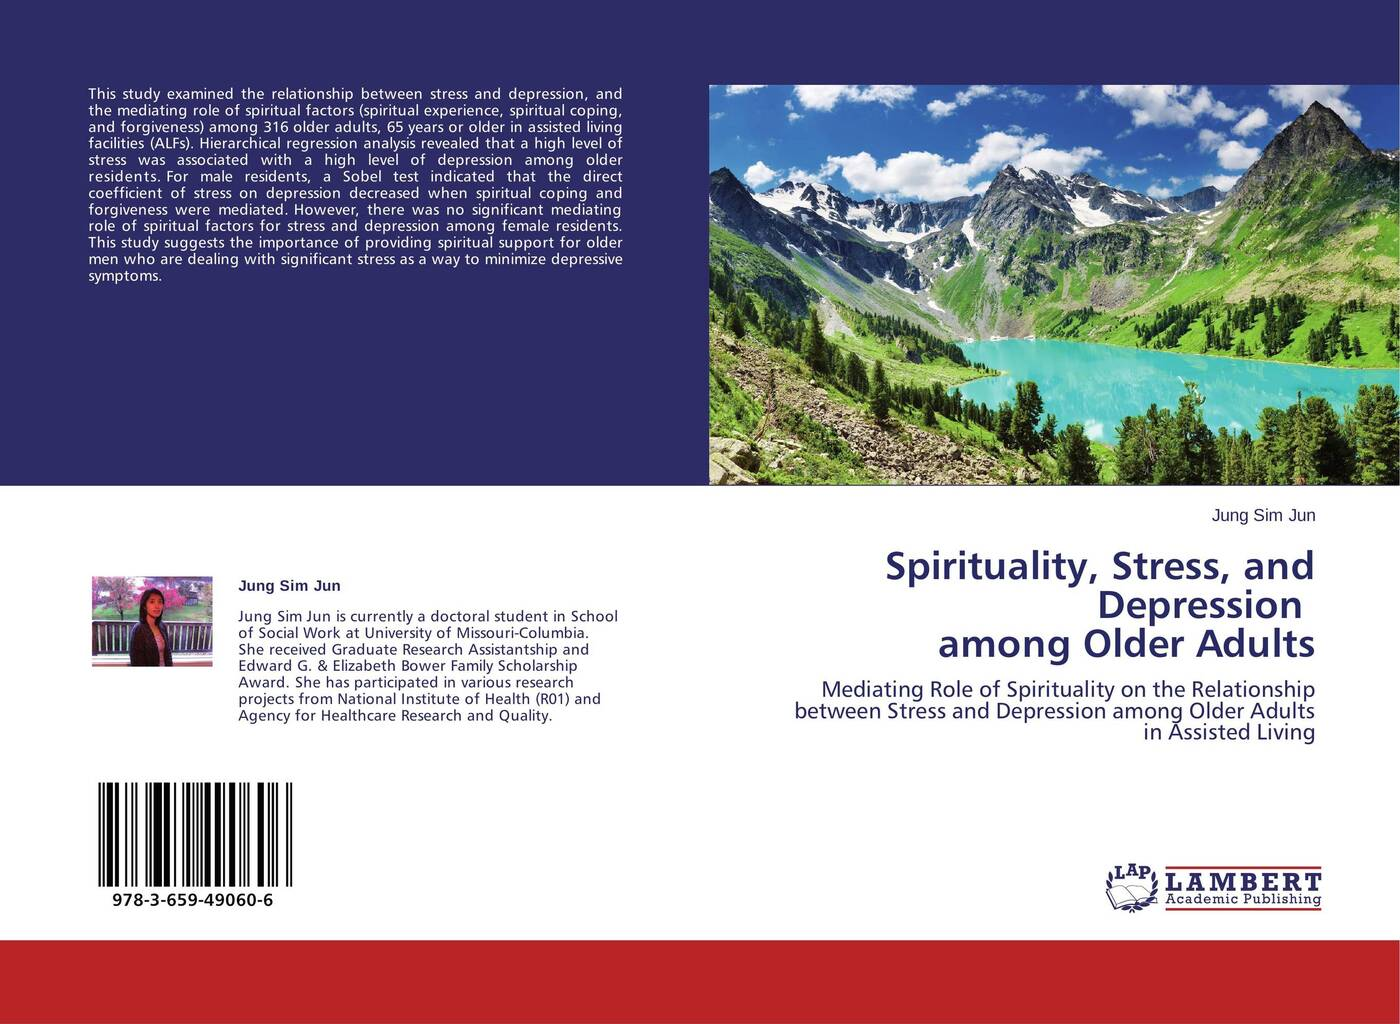 Jung Sim Jun Spirituality, Stress, and Depression among Older Adults все цены